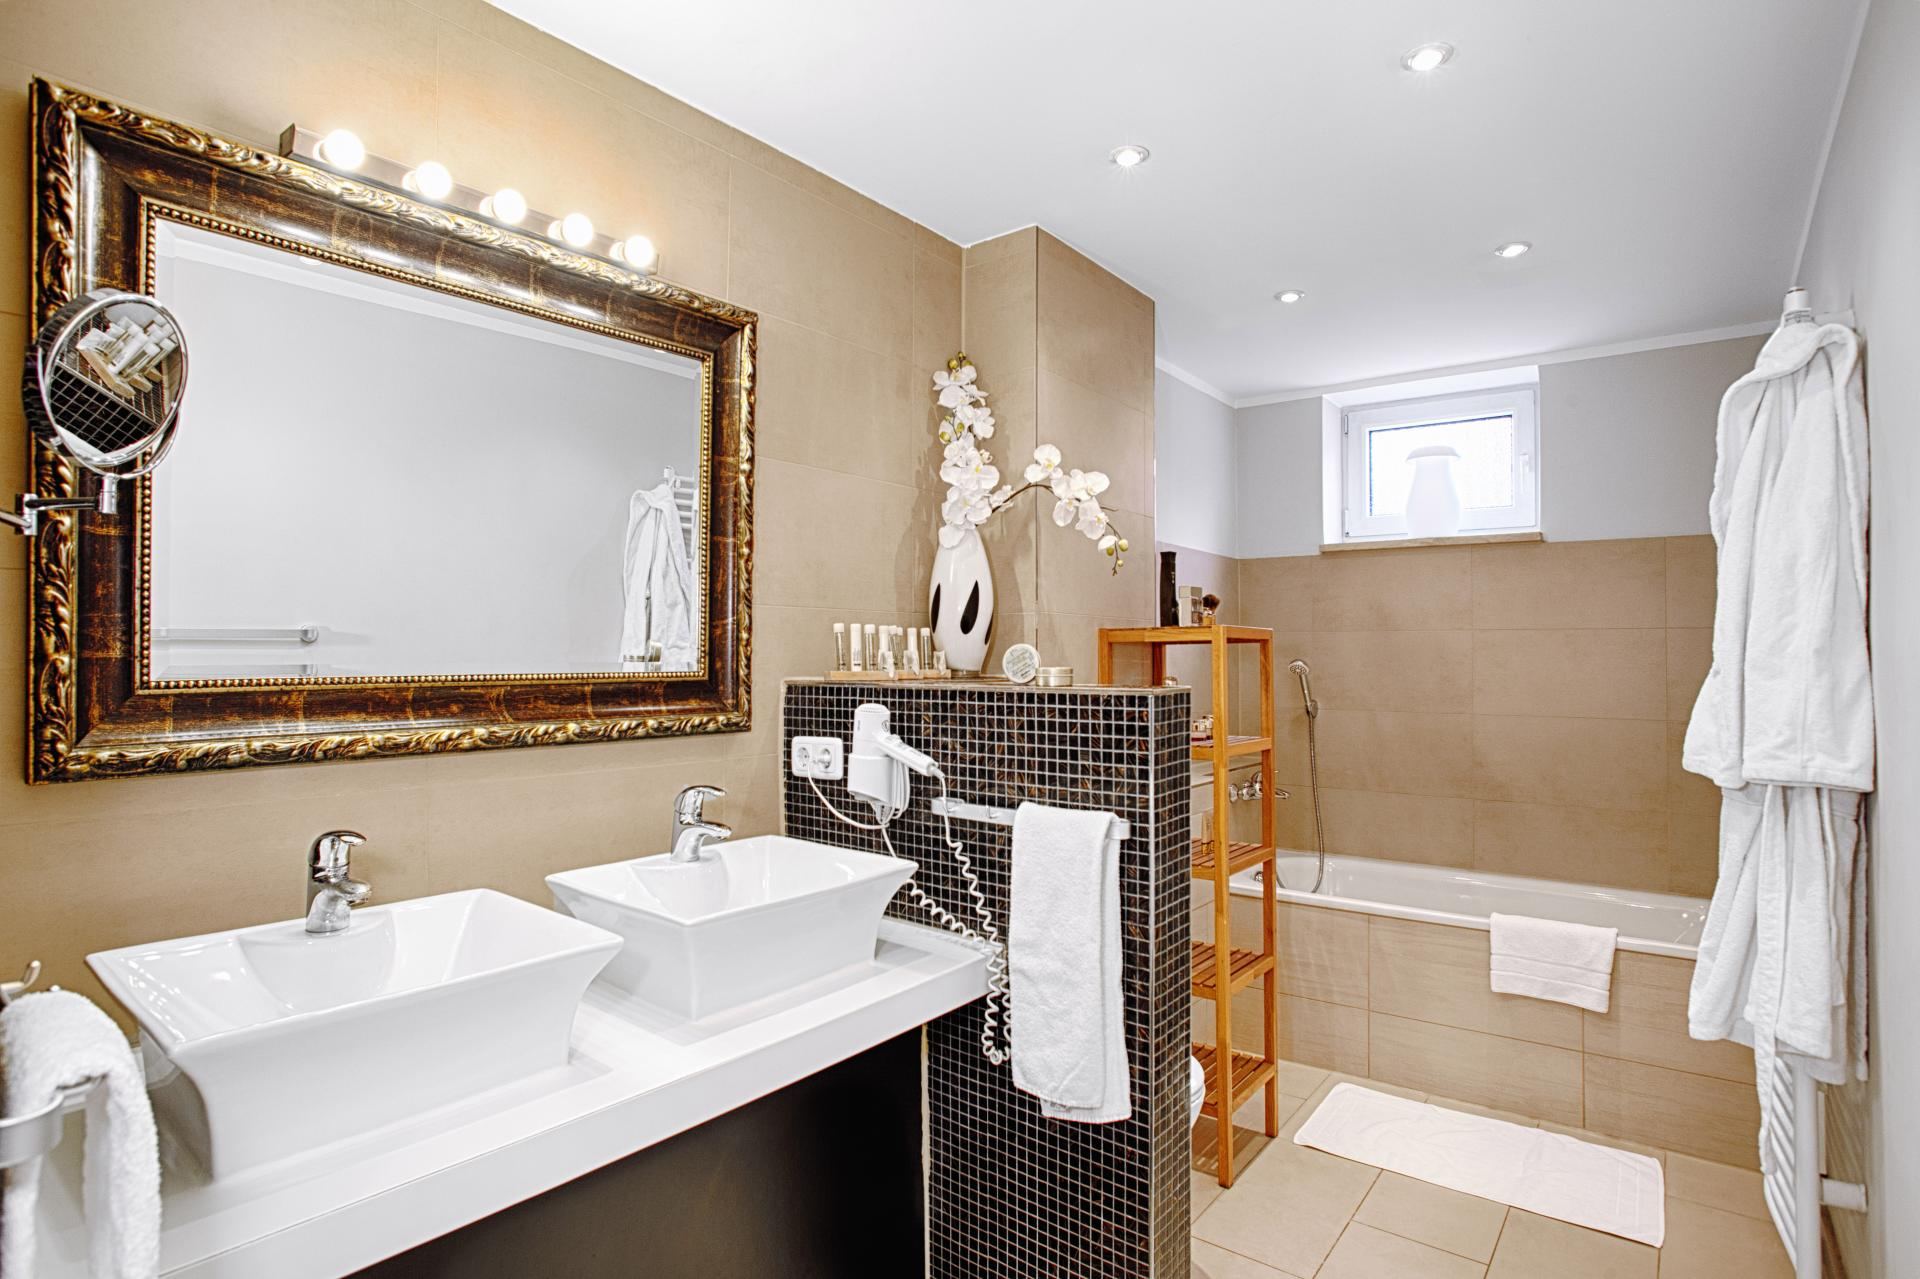 Bathroom at Boardinghouse Serviced Apartments